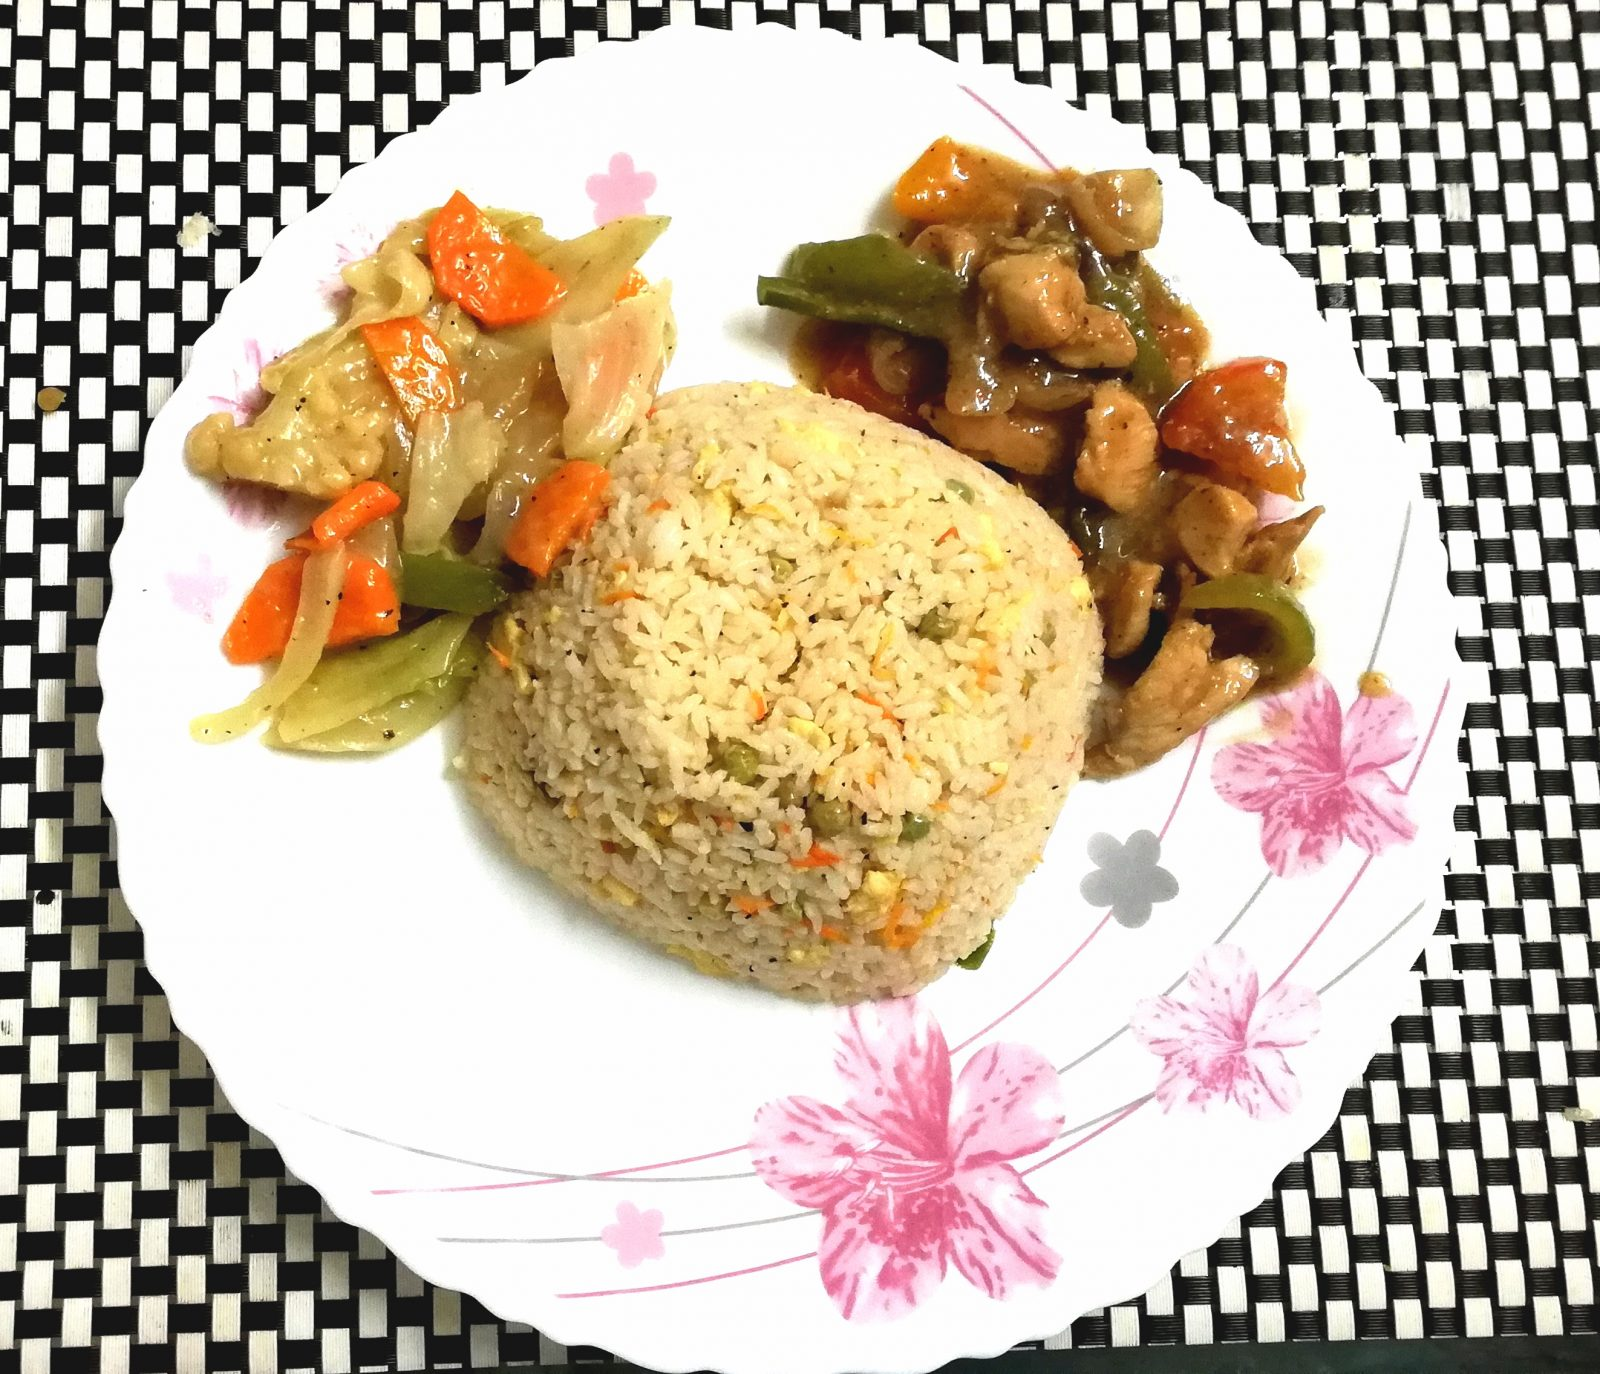 Fried rice+Chinese veg+Chicken gravy from Shelley's Kitchen